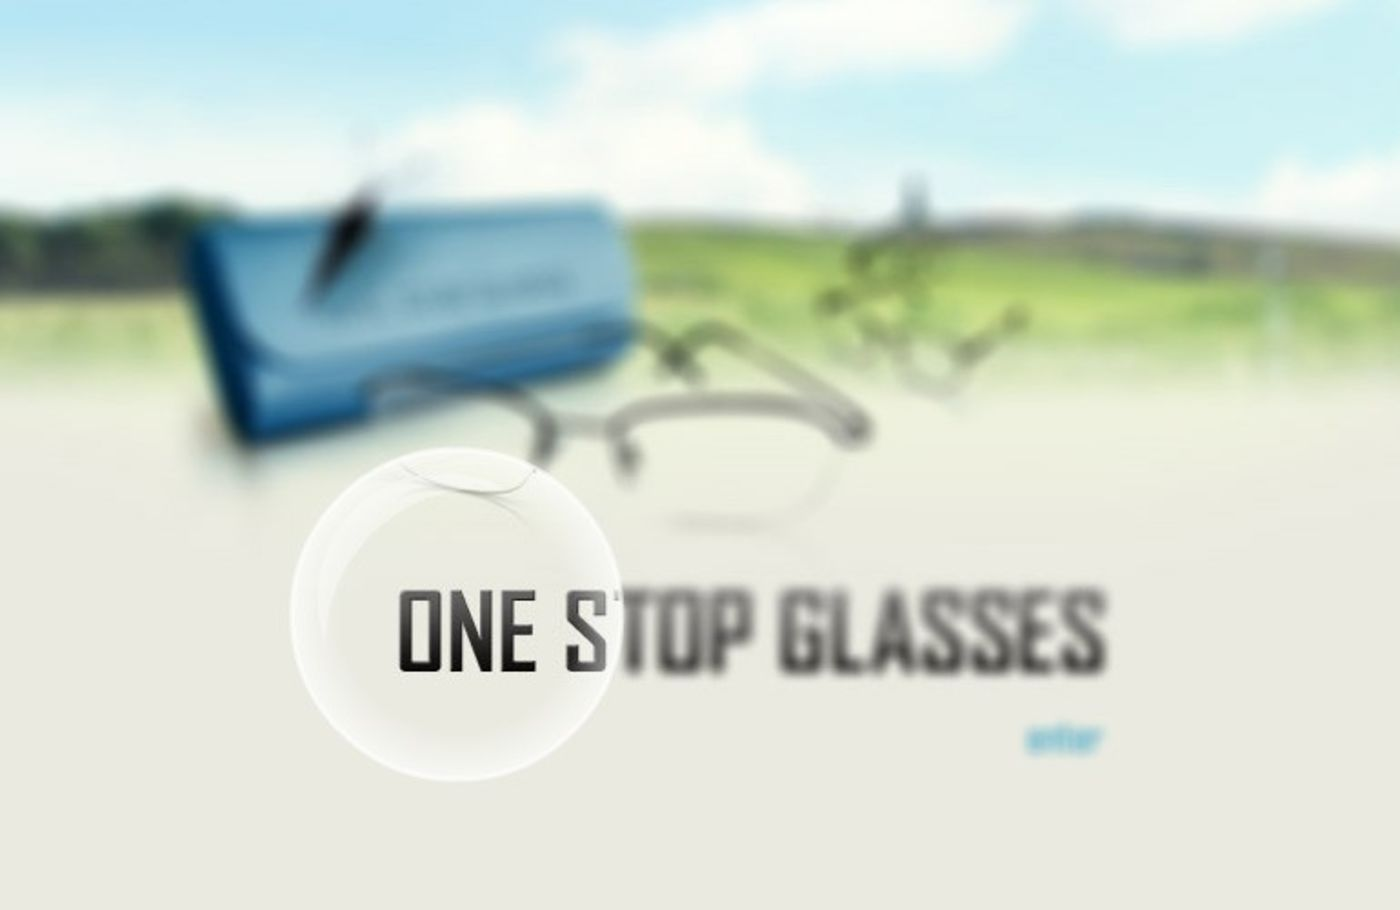 One Stop Glasses Welcome